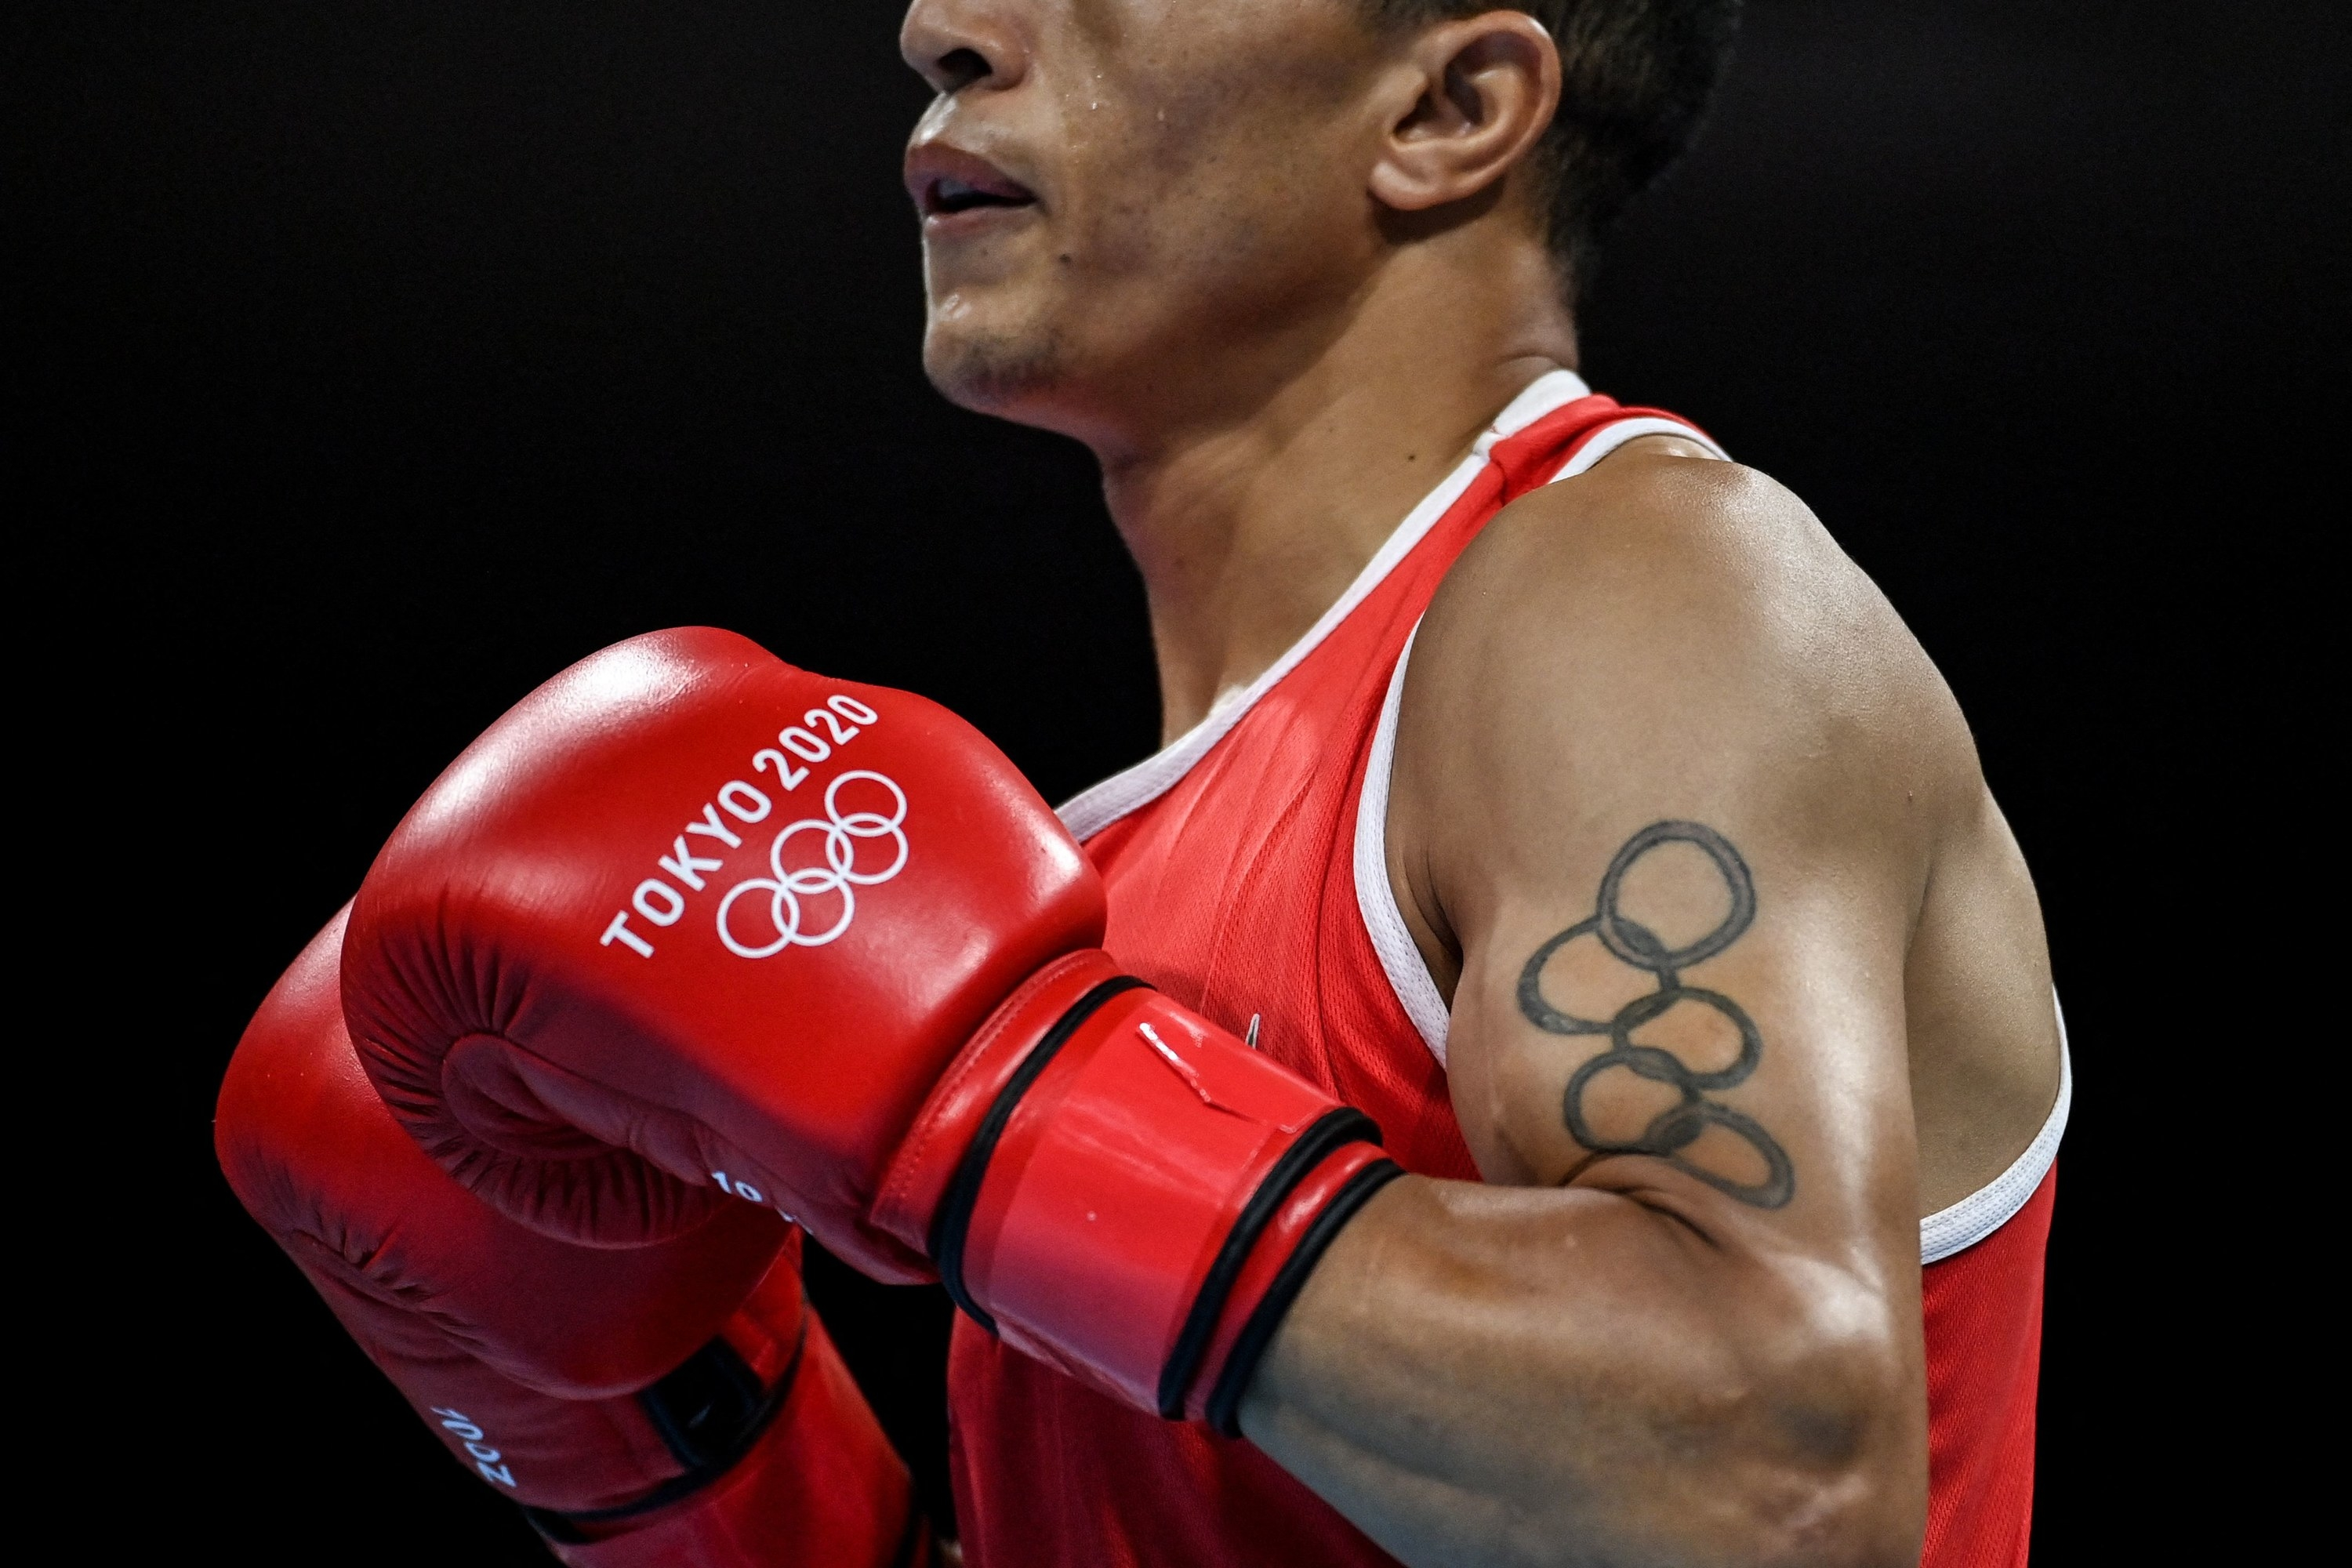 Olympic boxer wears red Tokyo 2020 gloves and flexes before competition